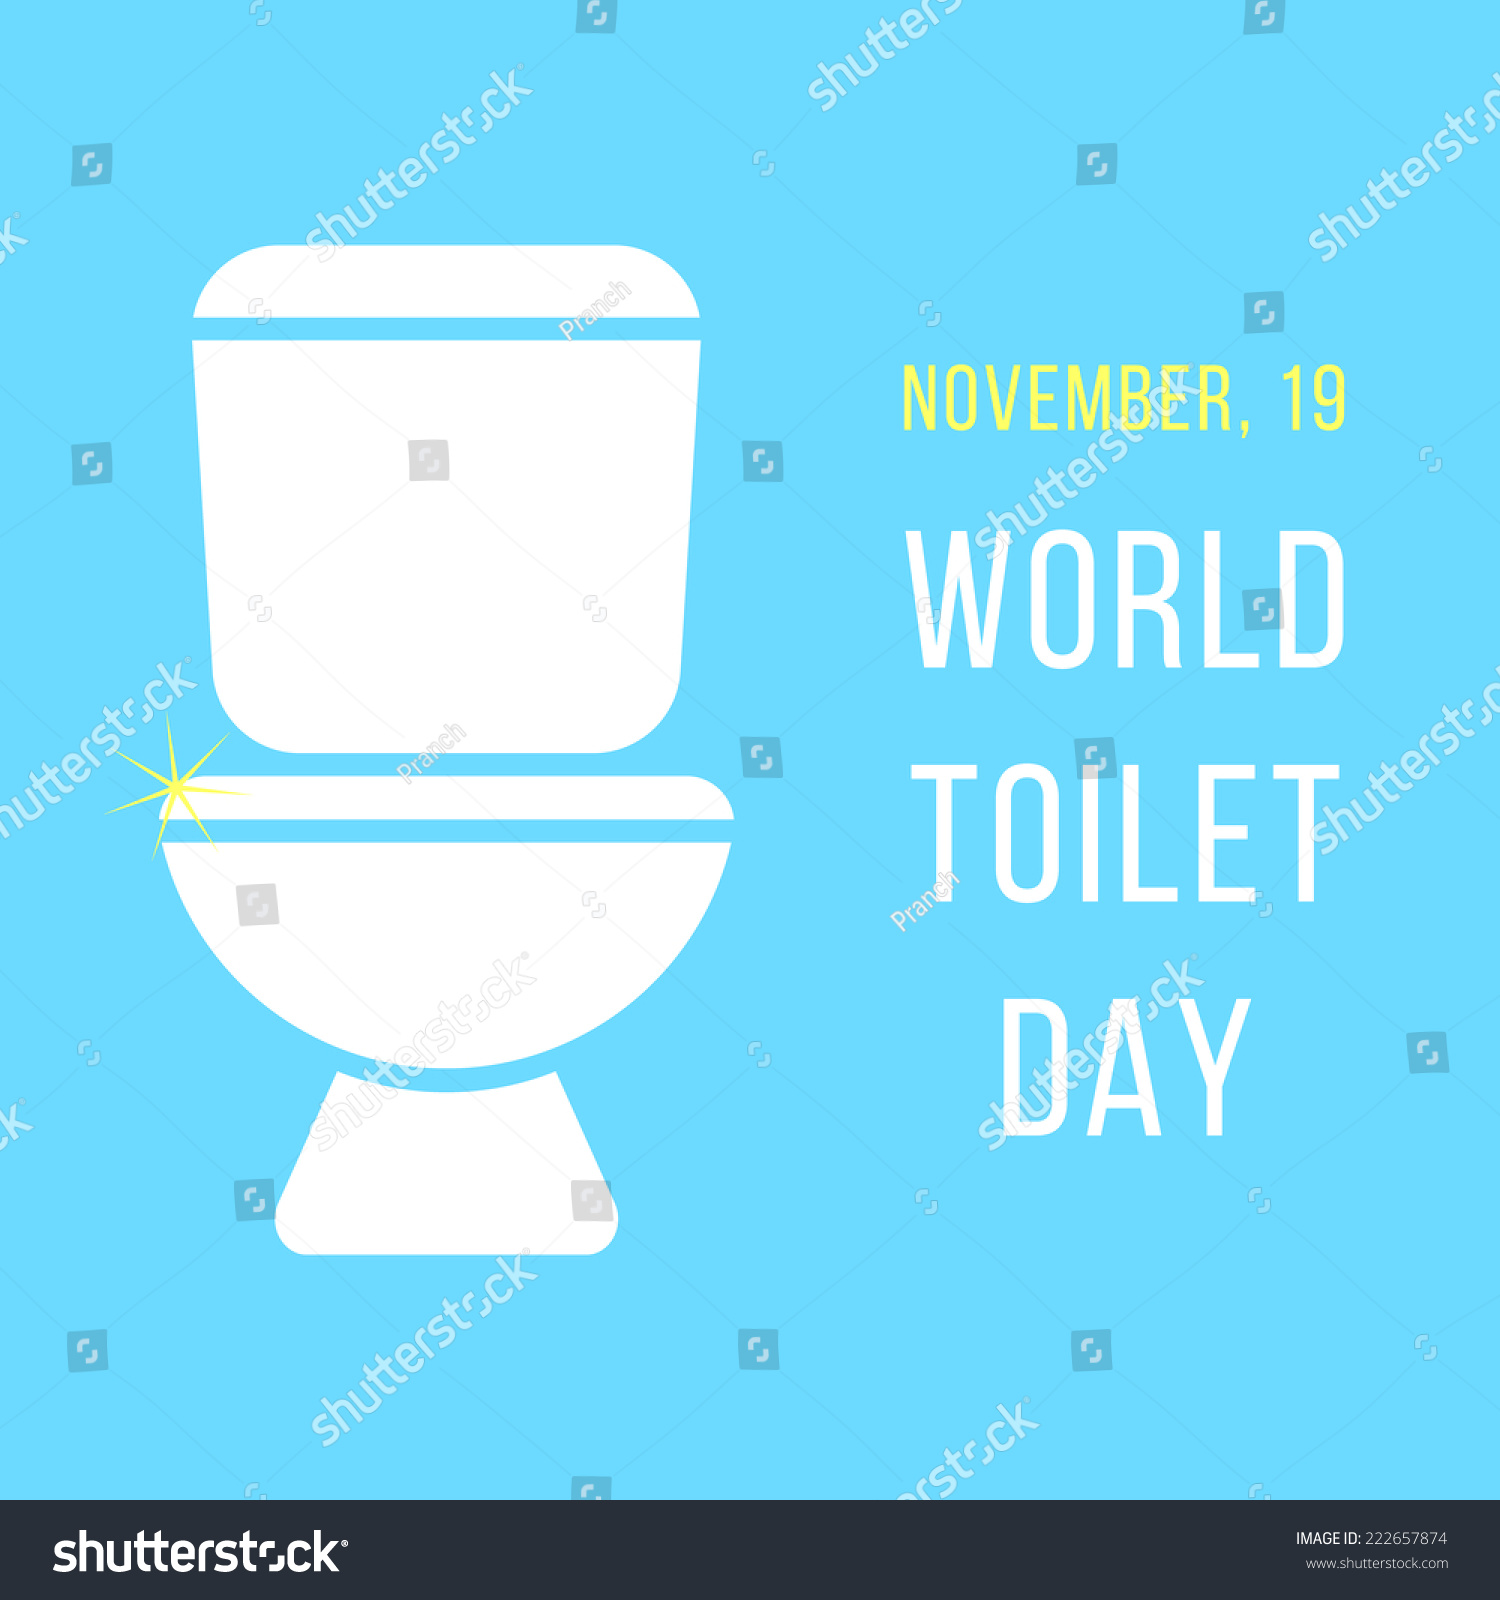 World Day Toilet Bowl Isolated On Stock Vector HD (Royalty Free ...